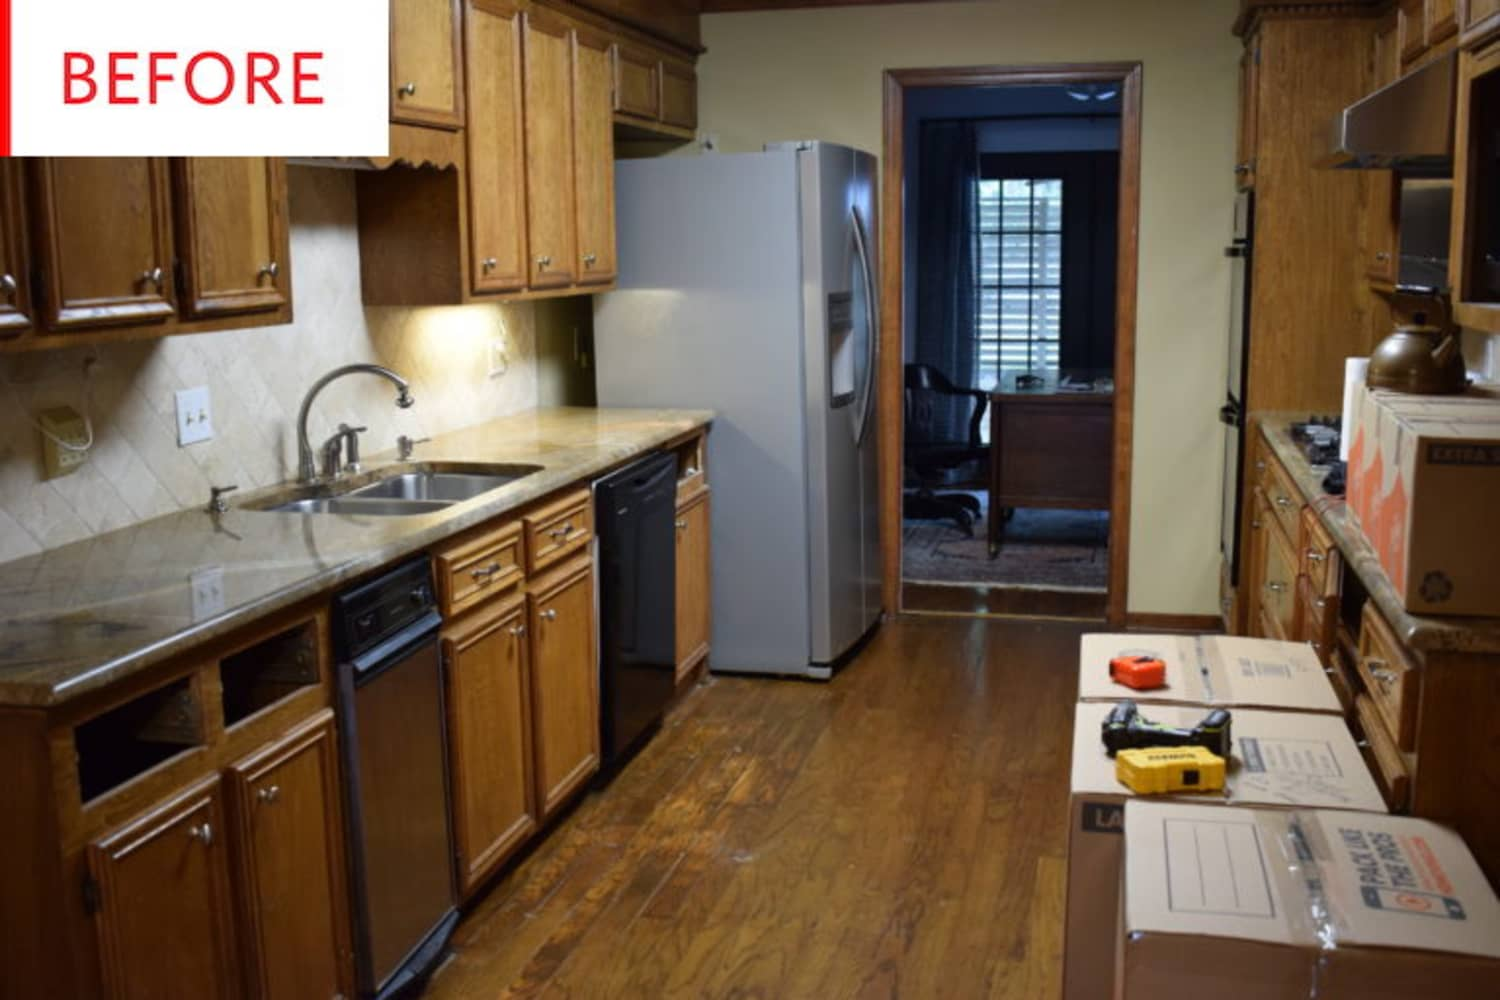 Before and After: You Won't Recognize This Kitchen After Its Completely DIY Upgrade